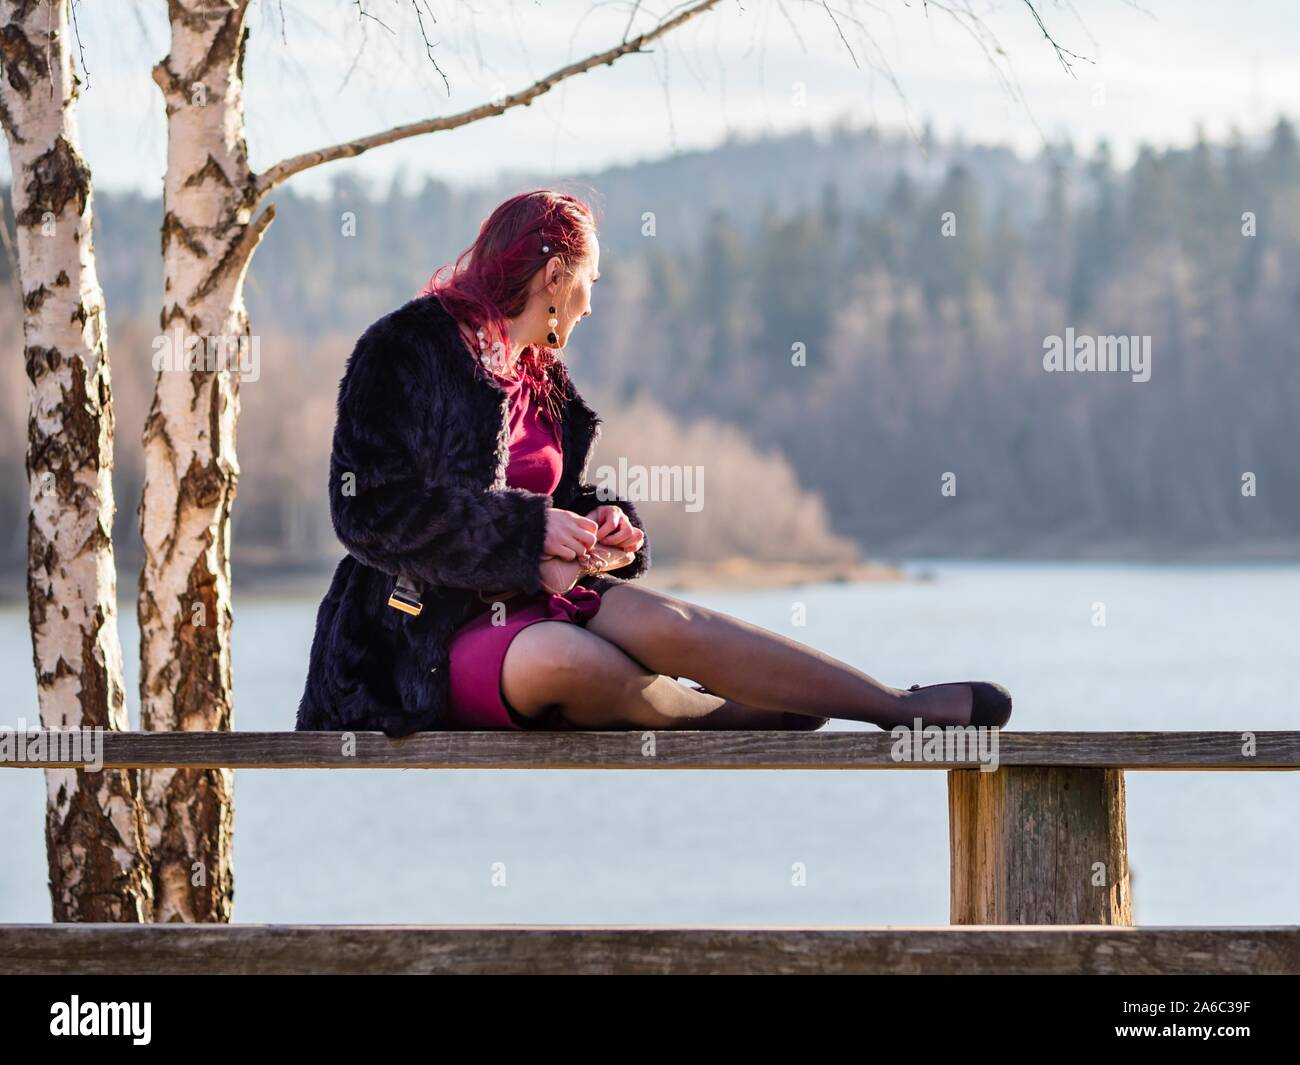 Leisurly seated on wooden bench looking away into distance background Stock Photo